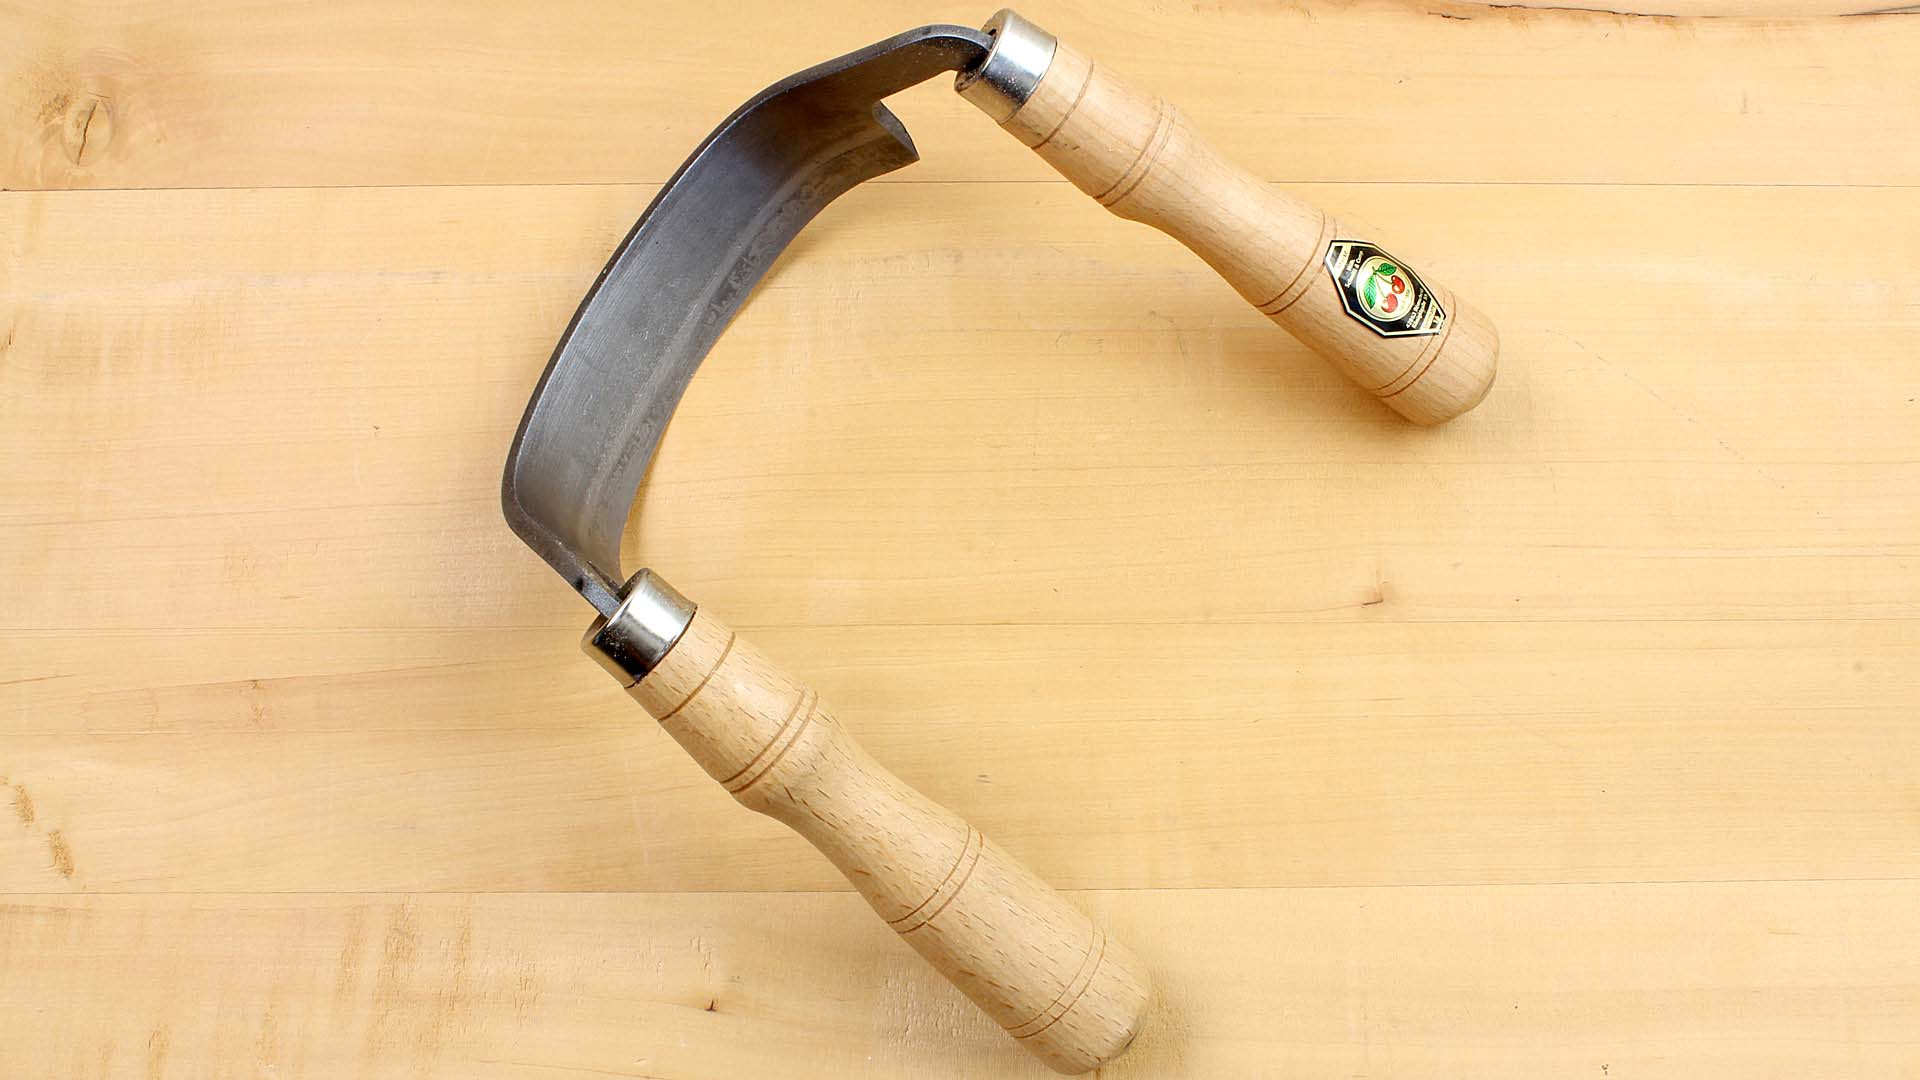 Barrel Draw Knife open